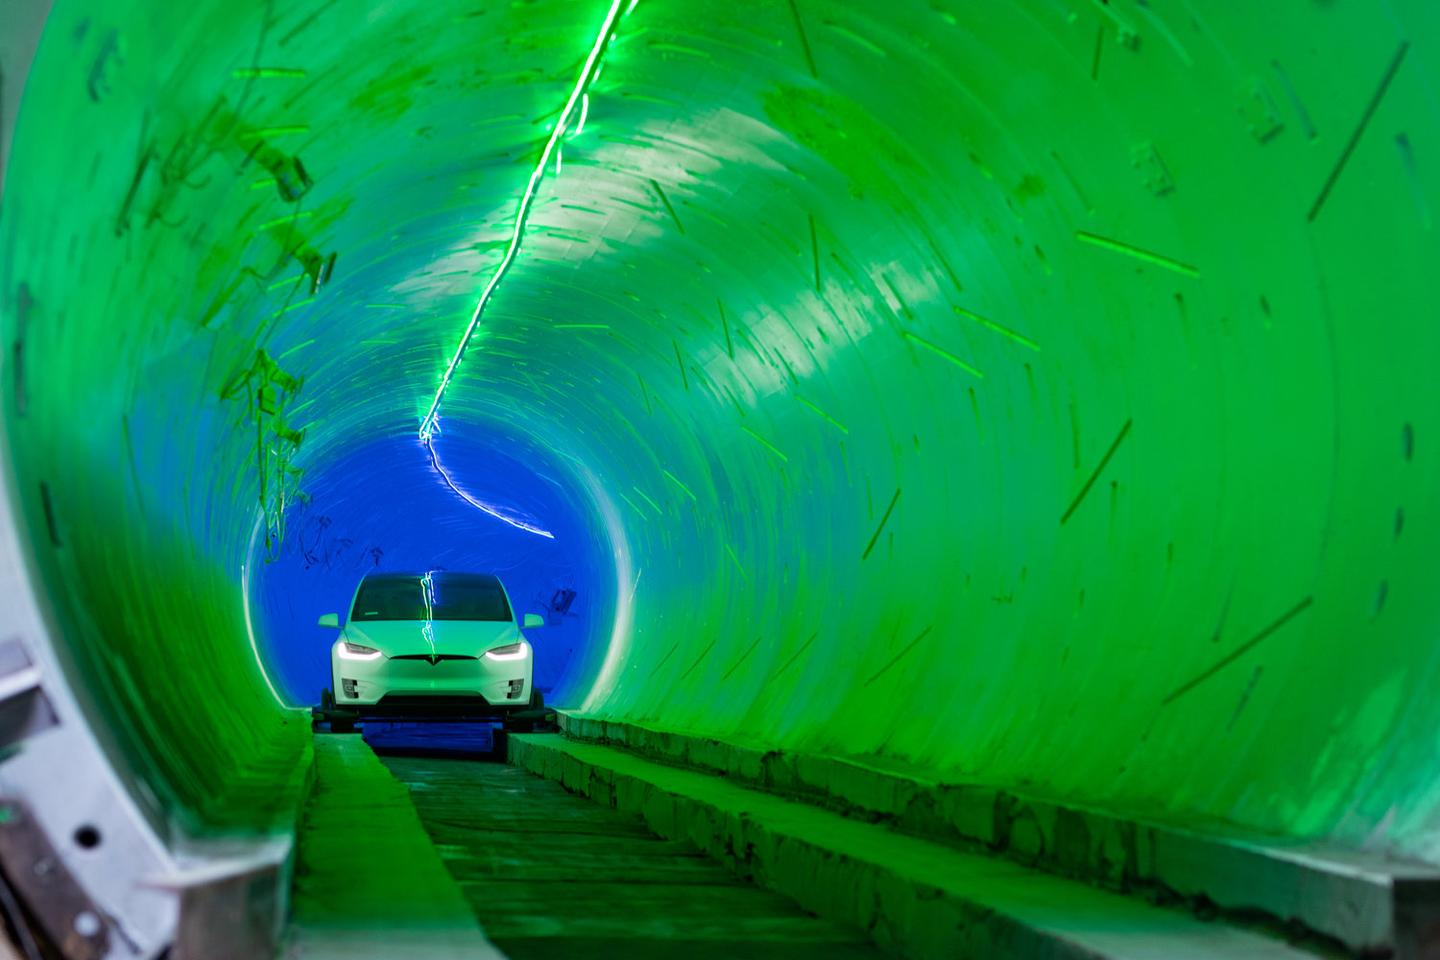 A look inside The Boring Company's test tunnel